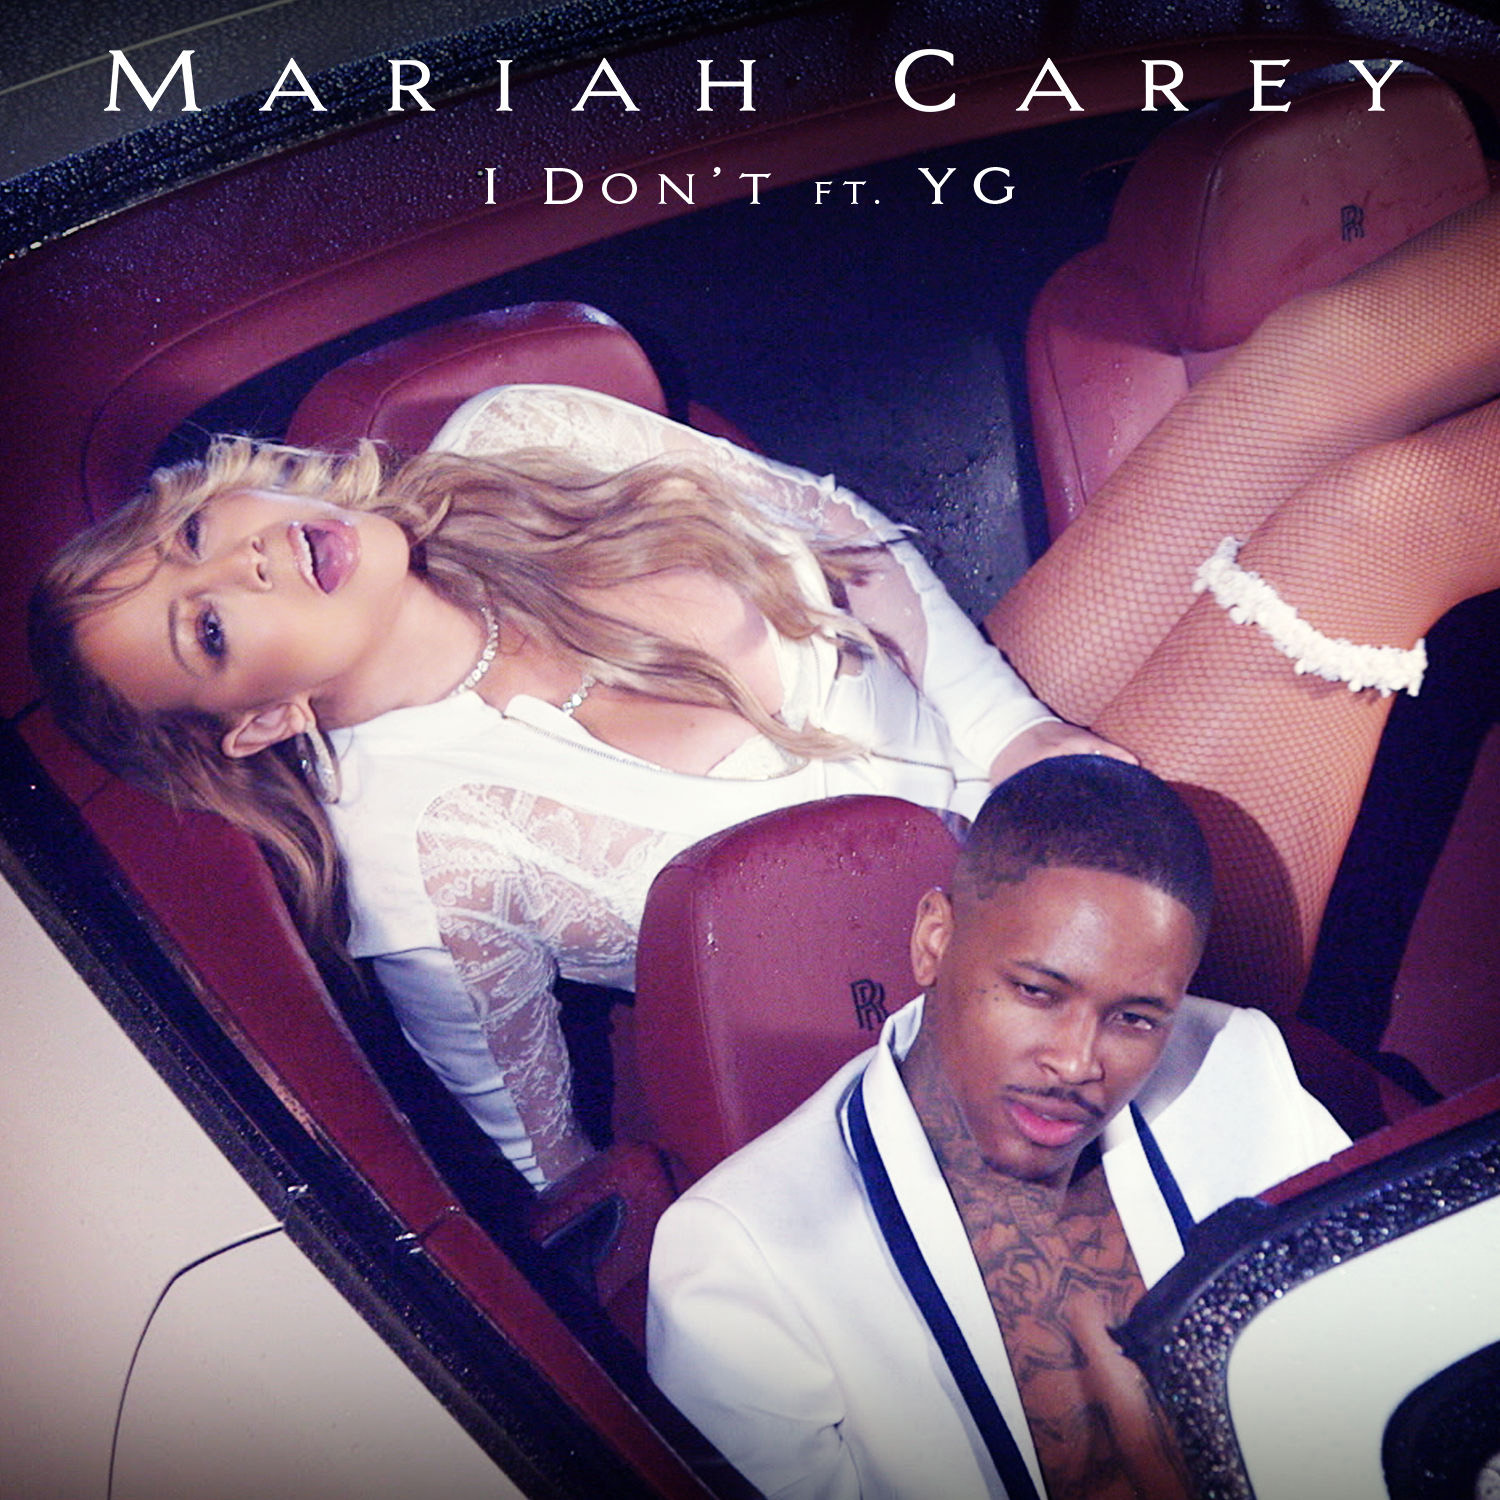 [YG] came up with the 'I know you love me' part and I loved that [singing] section - - Mariah Carey